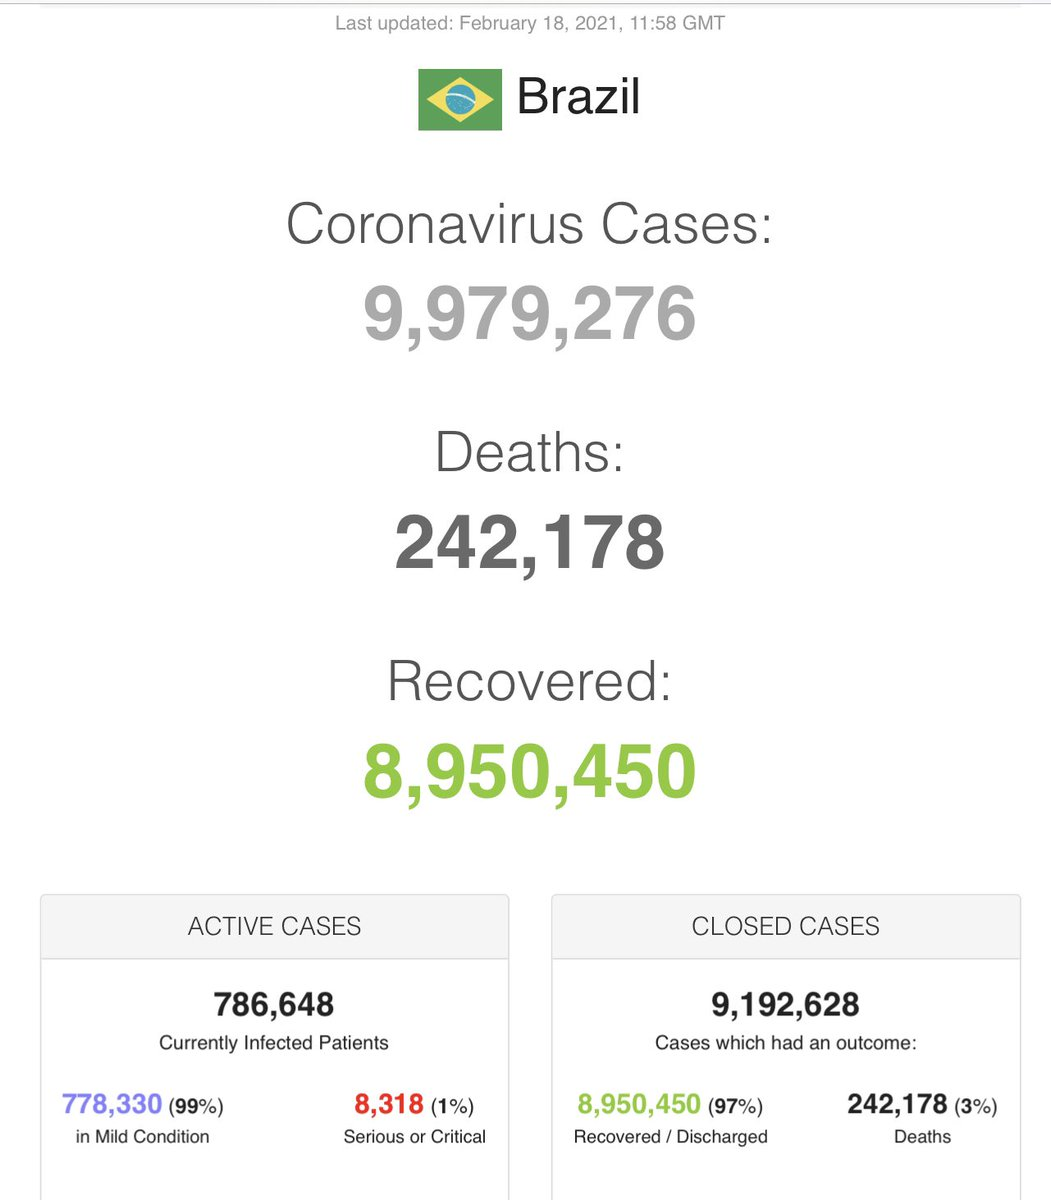 In #SouthAmerica #Brazil recorded 57,295 new #COVID19 infections and 1,195 #coronavirus deaths yesterday. In an effort to see what impact #COVID19 vaccinations will have Brazilian health officials will vaccinate the entire adult population of #Serrana, some 30,000 people.